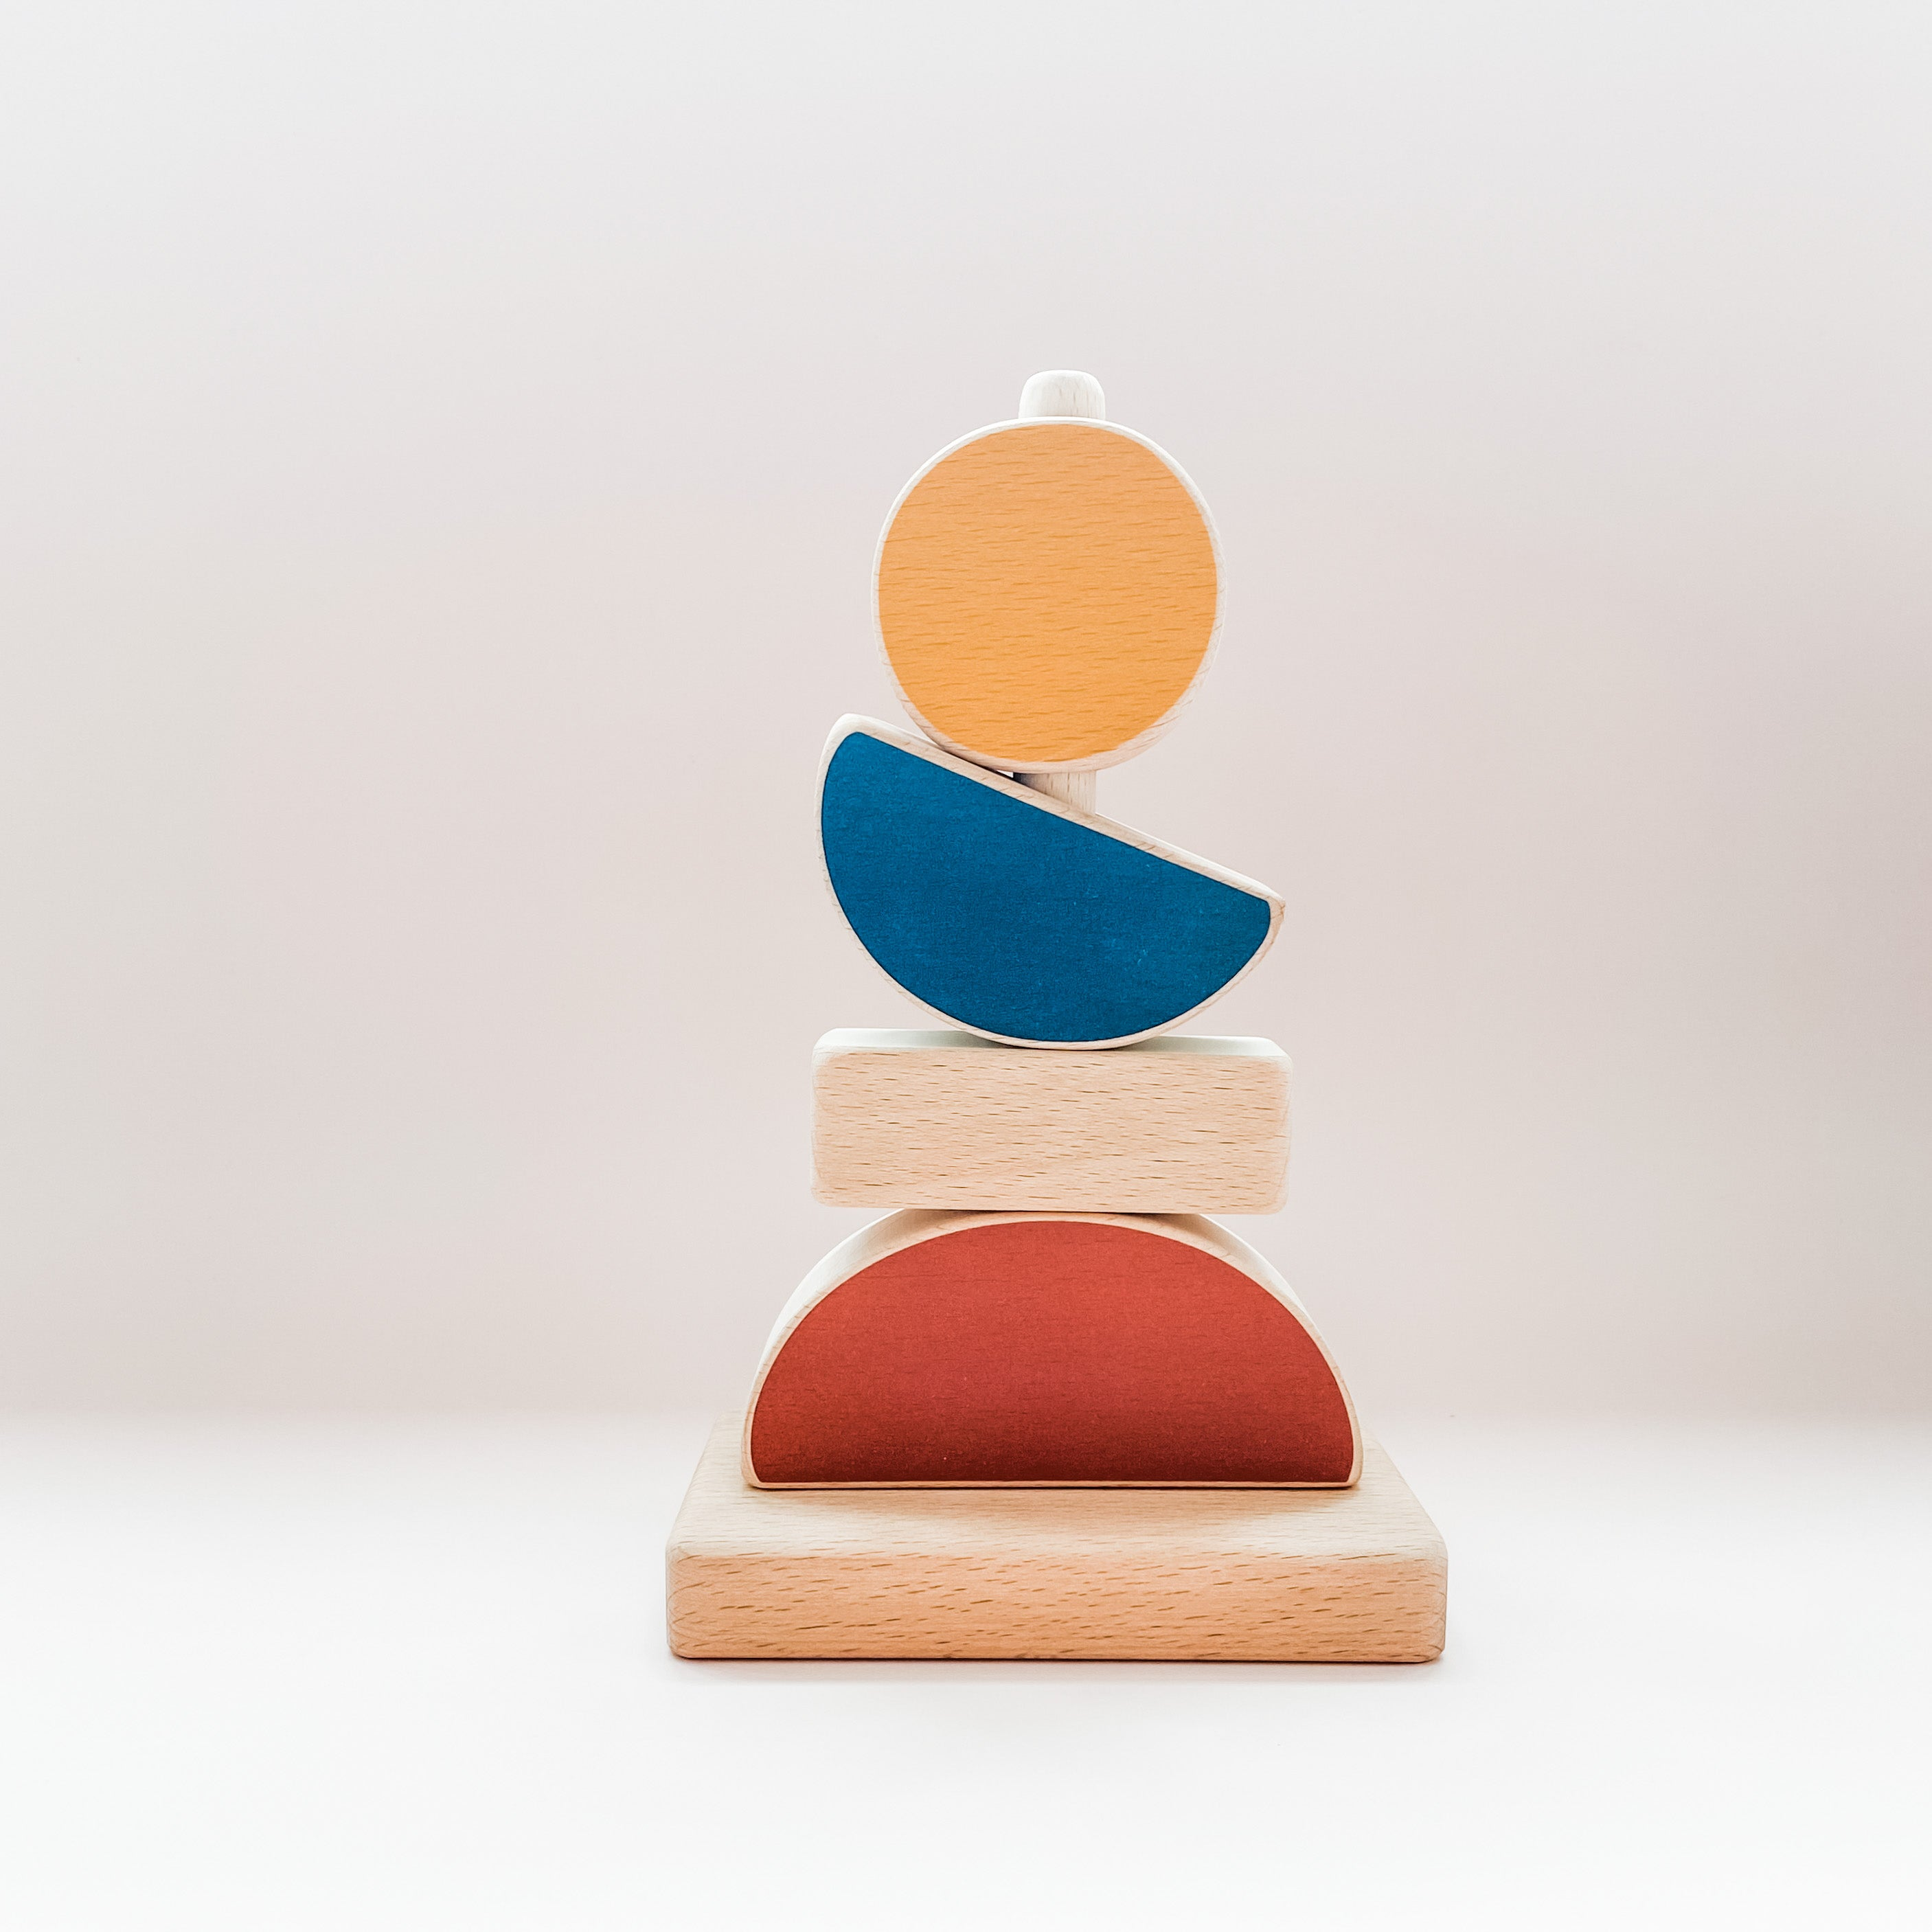 The Wandering Workshop 'Landscape' Stacking Toy